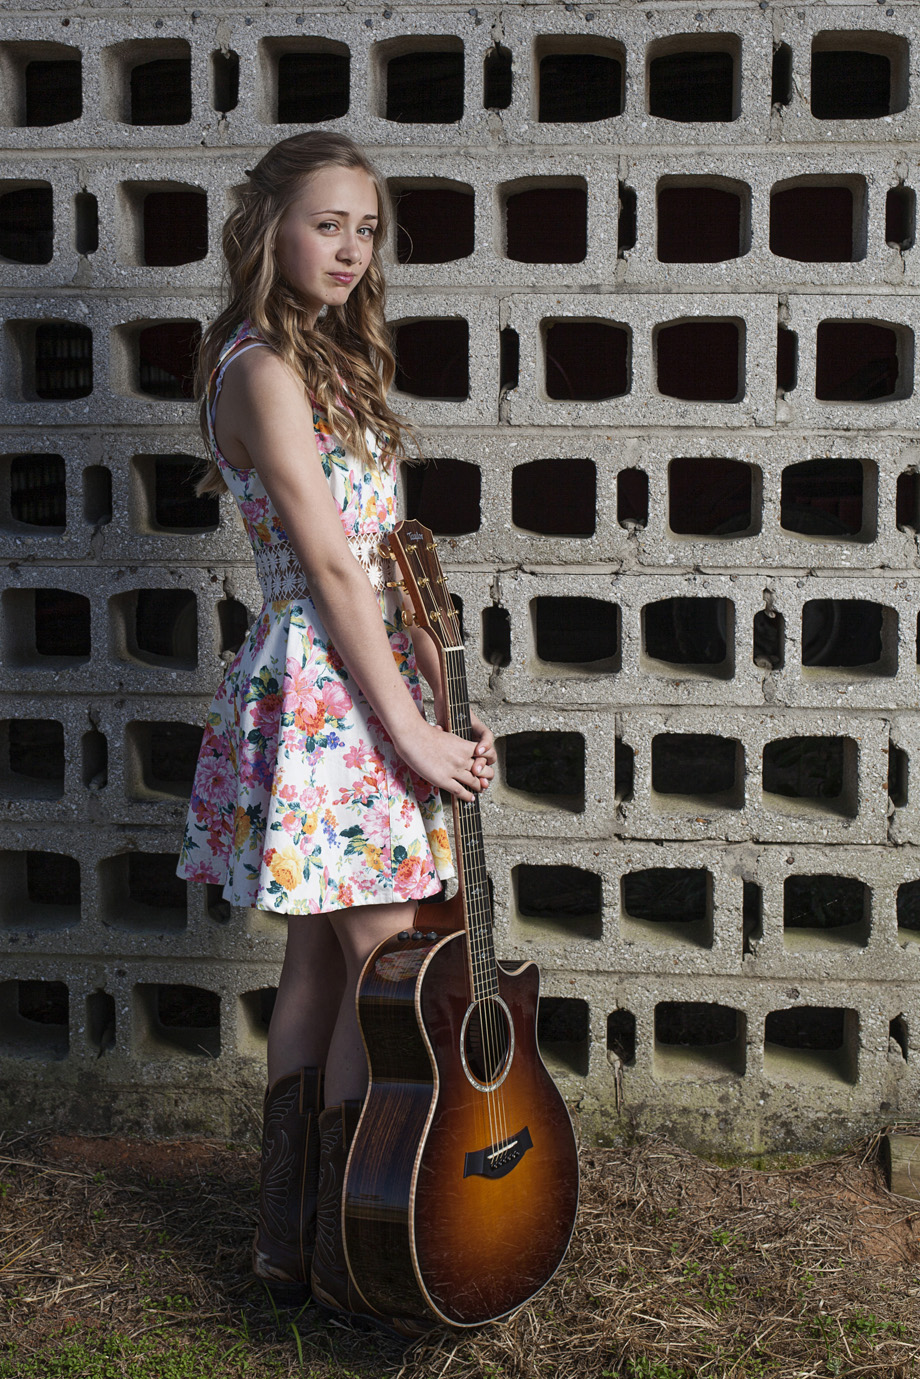 Summerlyn Powers | Mobile AL Country Musician